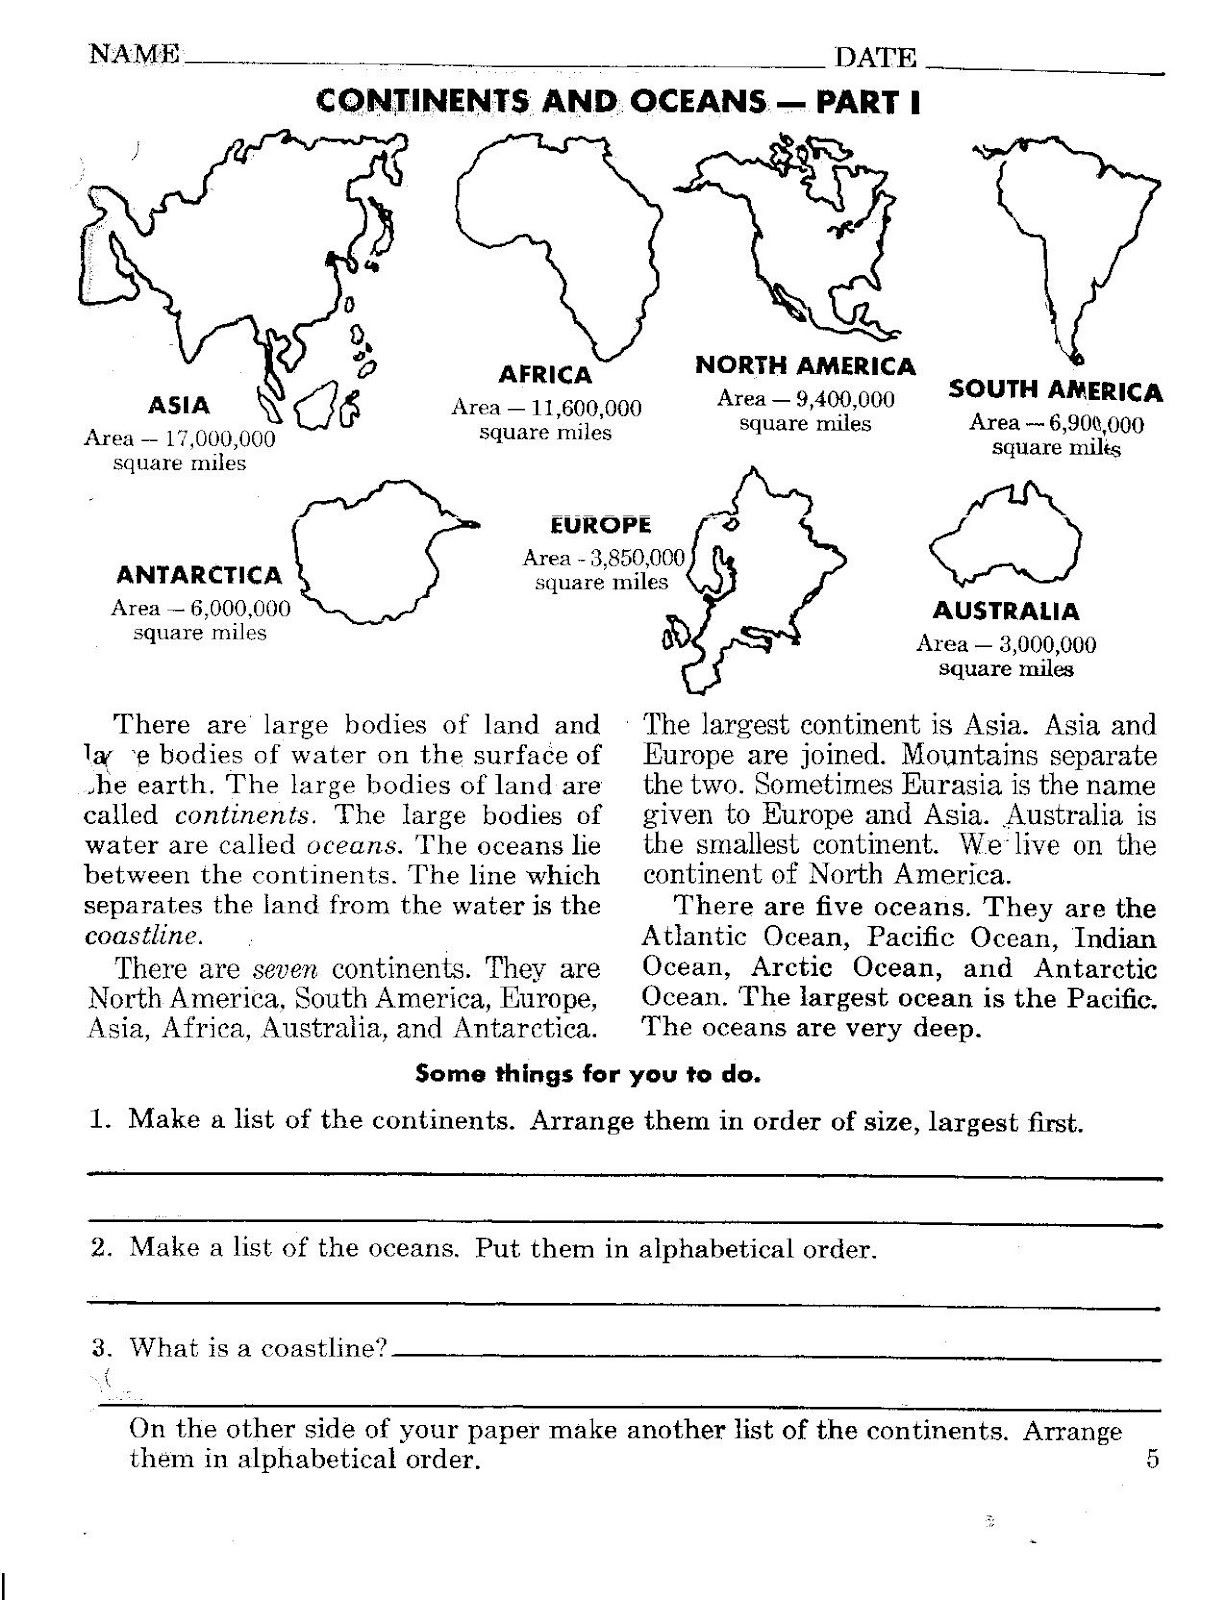 30 Continents And Oceans Worksheet